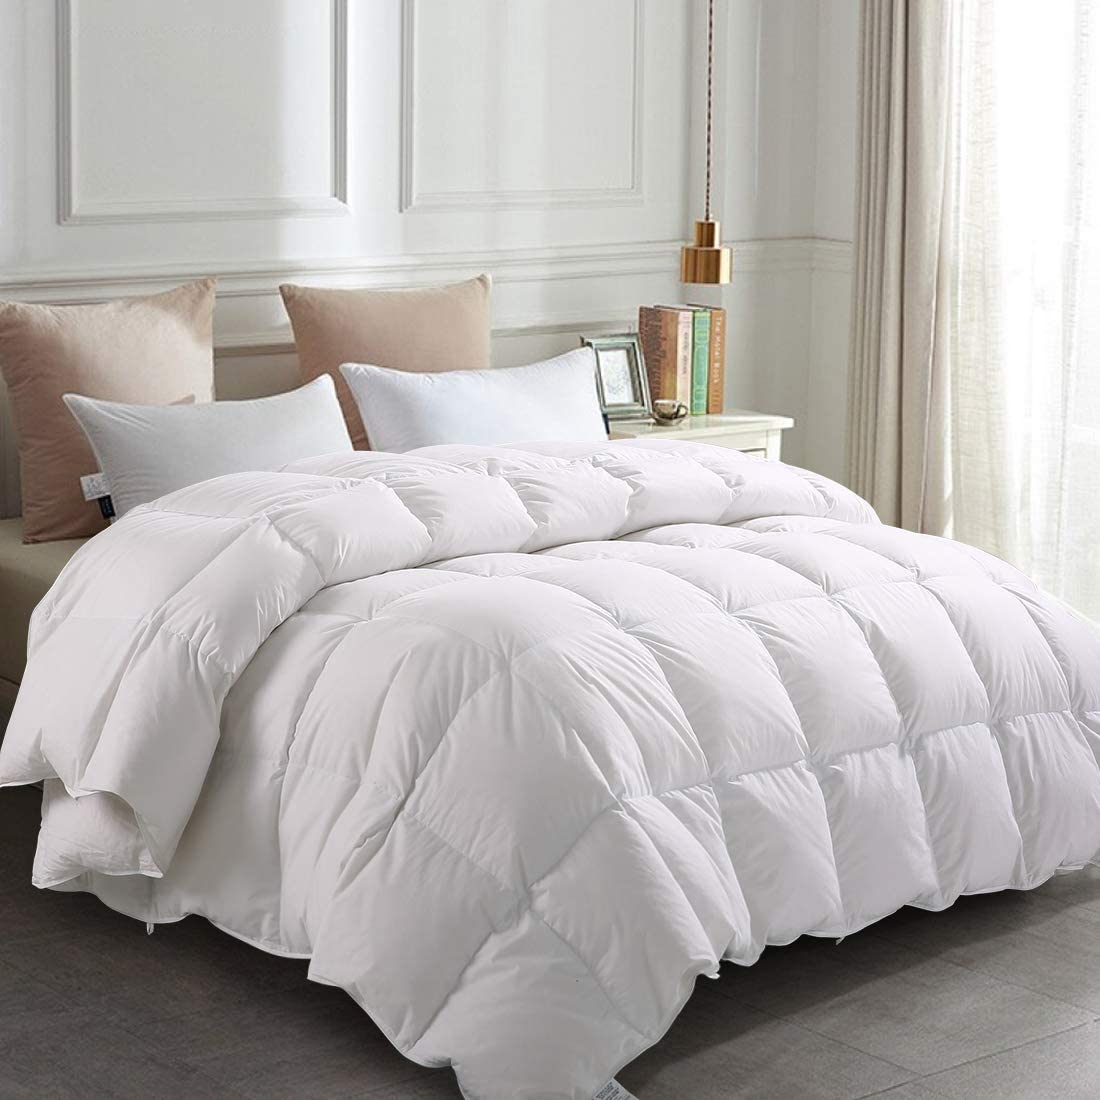 Balichun Premium Goose Down Comforter King- Solid White - Soft 1500 Thread Count Cotton Shell - 750 Fill Power - Down Duvet Insert with Tabs (White, King)